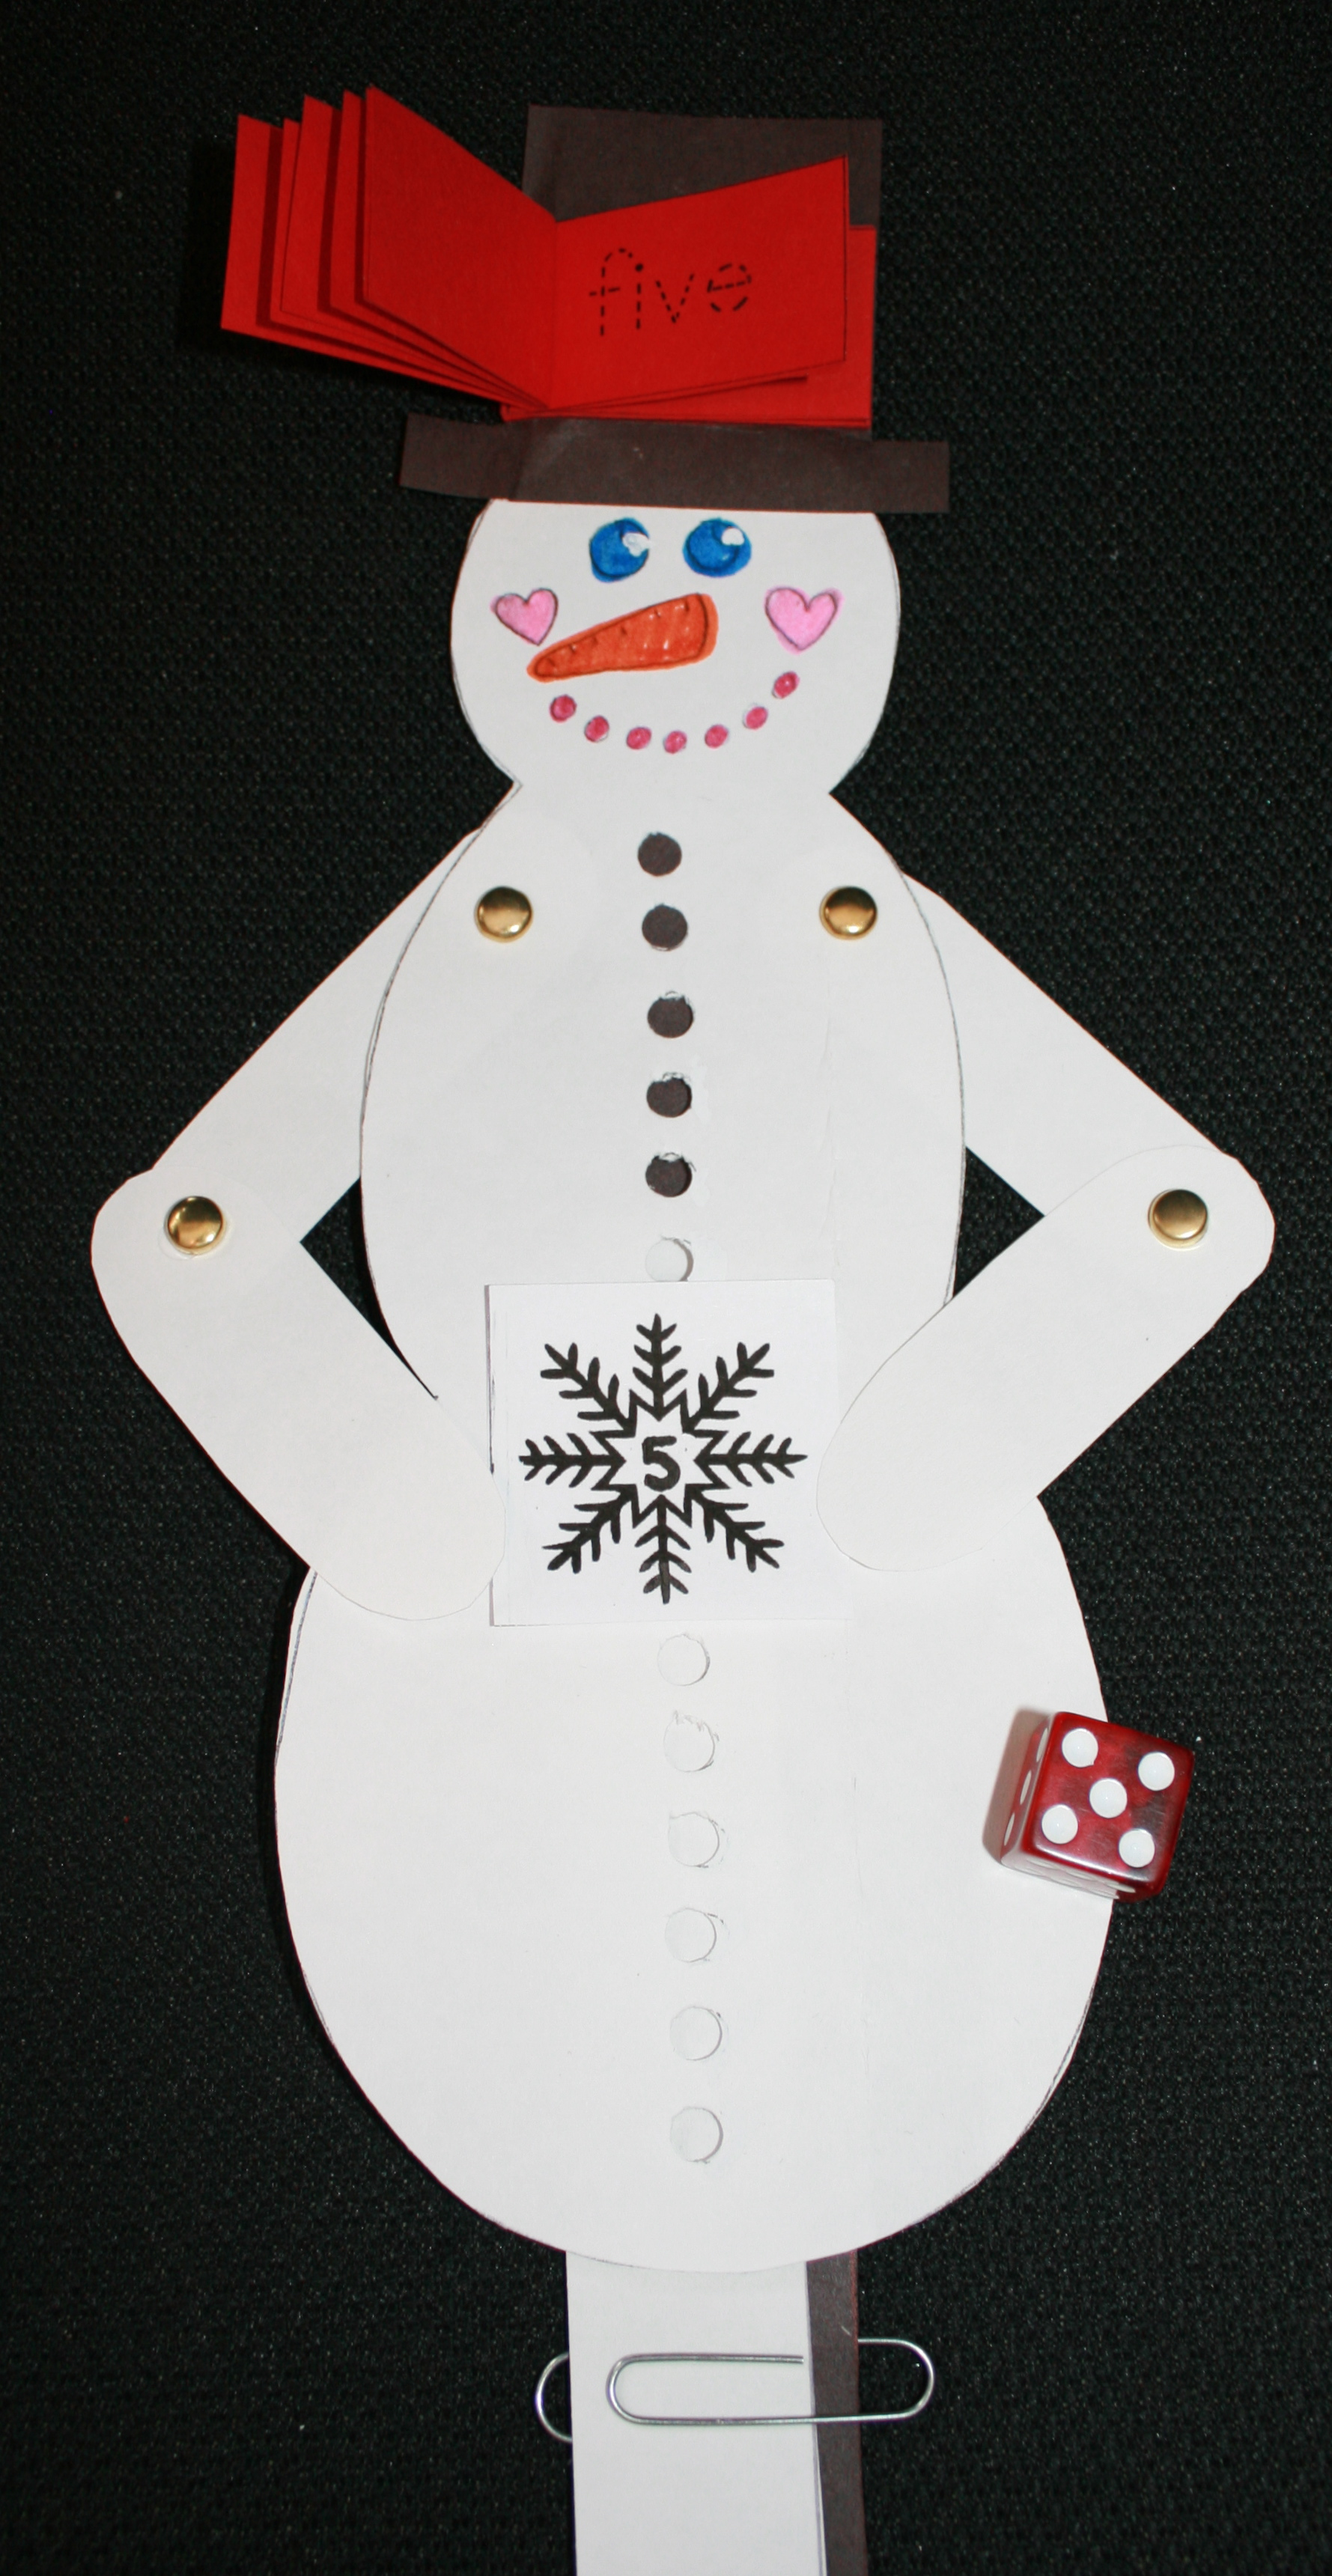 snowman activities, snowman ideas, snowman art projects, snowman art, snowman crafts, snowman centers, math centers, math activities, addition and subtraction activities, additon and subtraction centers, addition and subtraction manipulatives, addition and subtraction snowmen, math snowmen